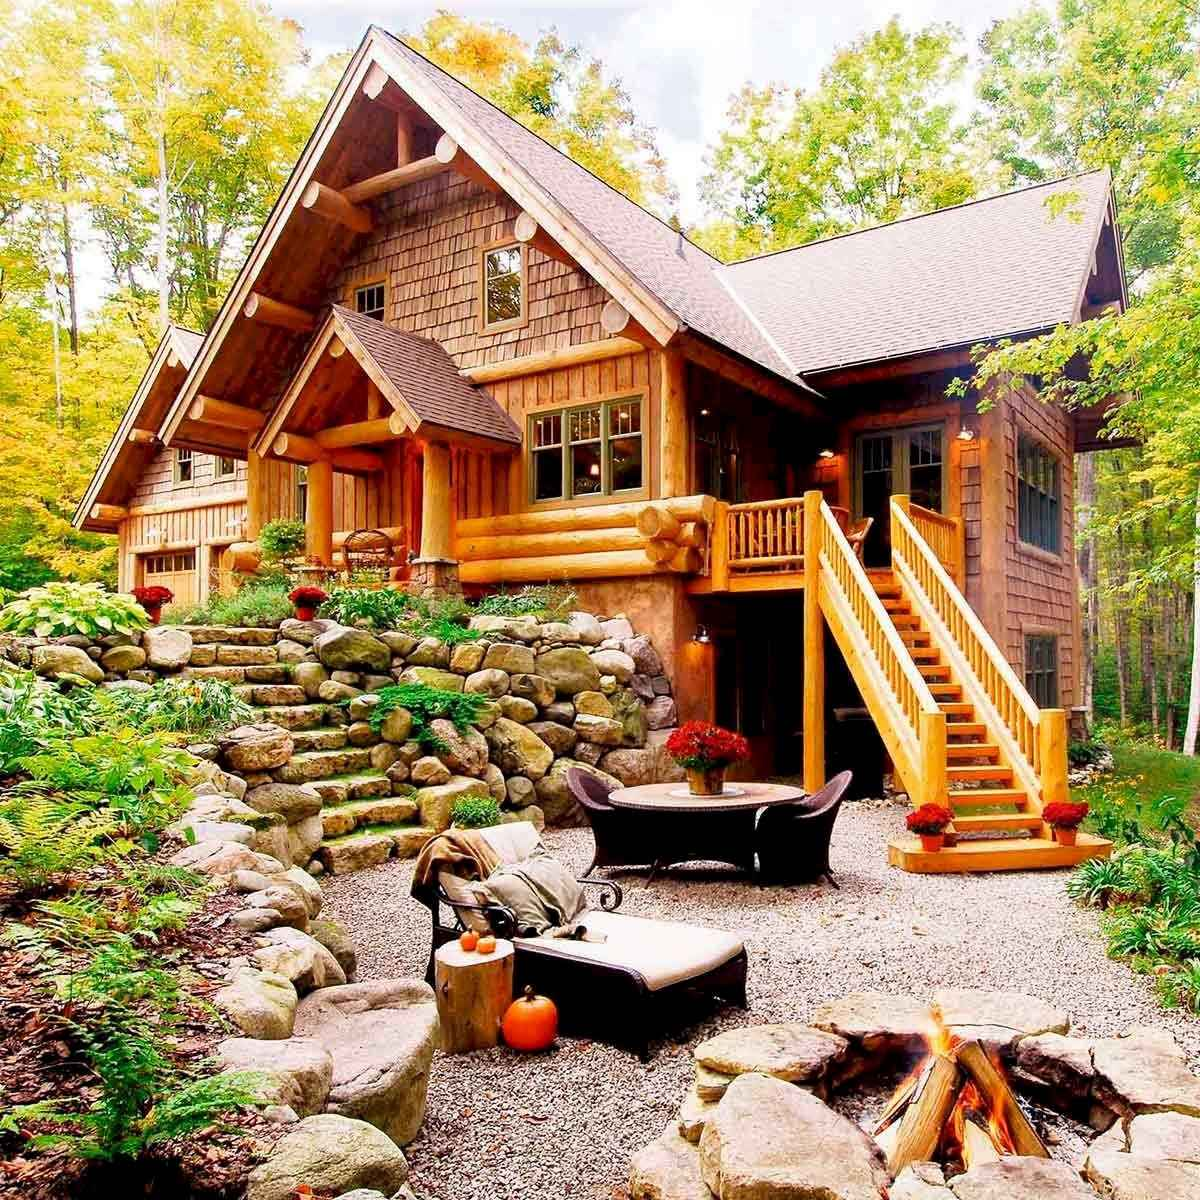 60 Rustic Log Cabin Homes Plans Design Ideas And Remodel (31)